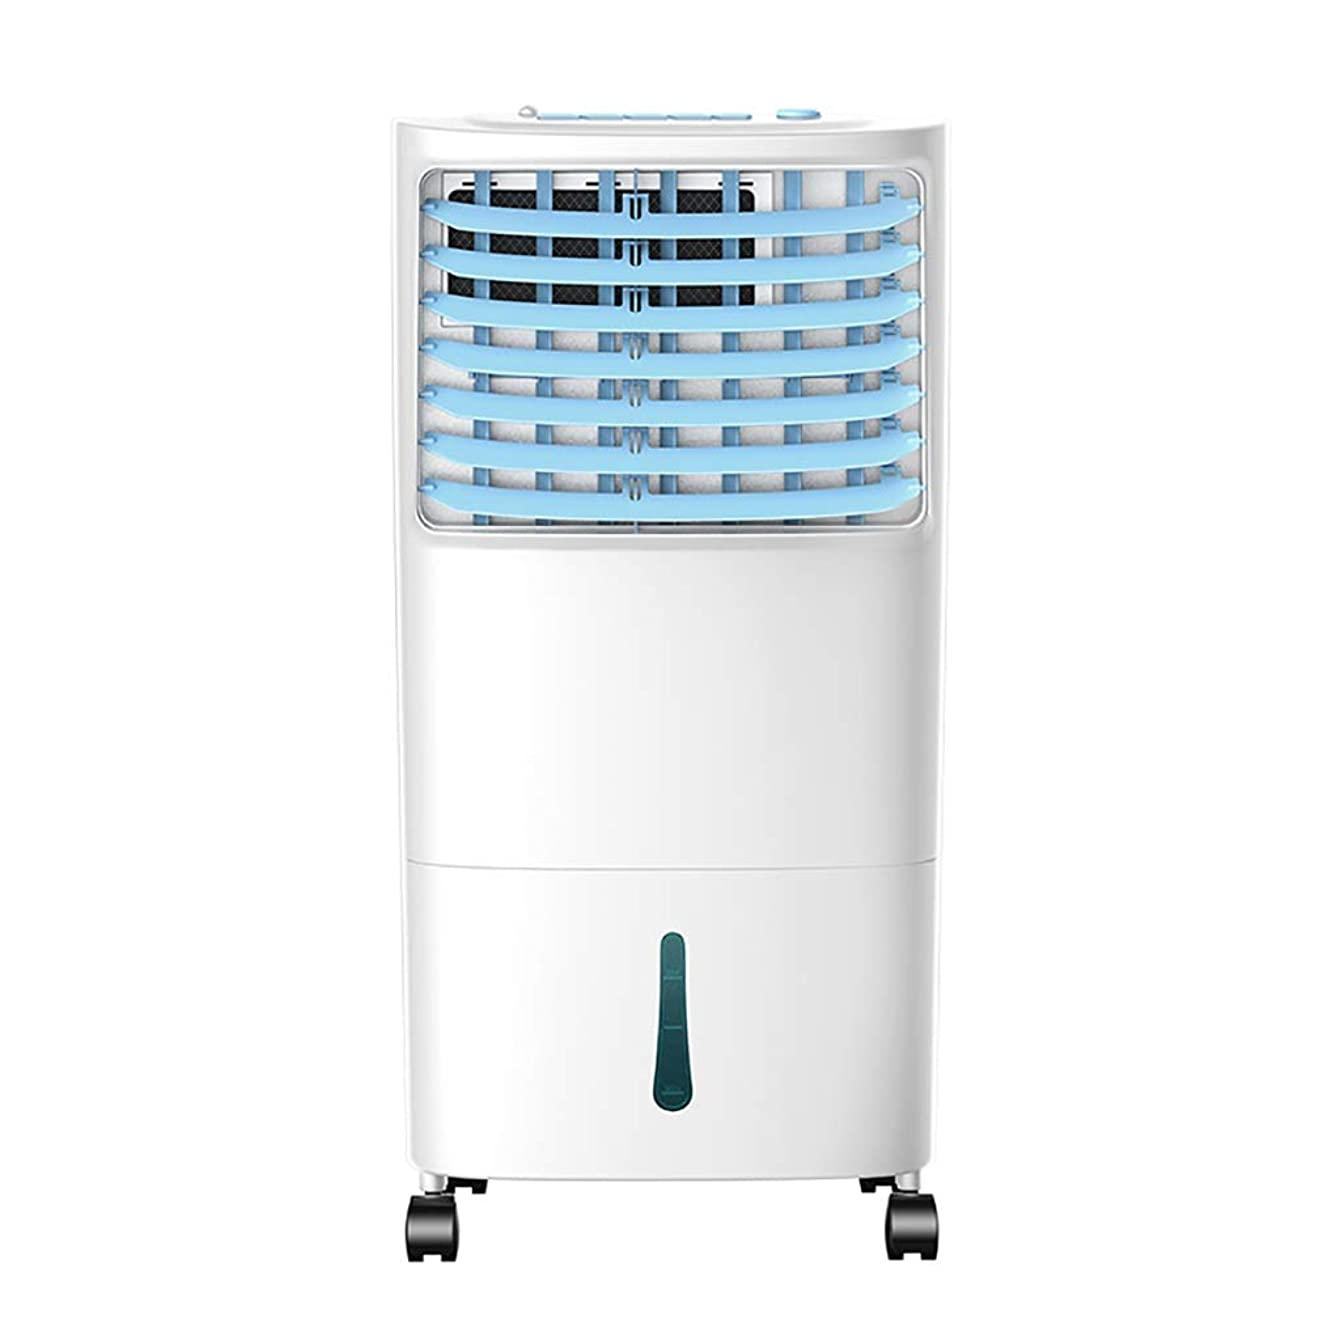 Personal Space Cooler Portable Air Conditioner, Evaporative Air Cooler And Dehumidifier With Remote Control, 3-in-1 Floor AC Unit With 3 Fan Speeds, Visible water window design